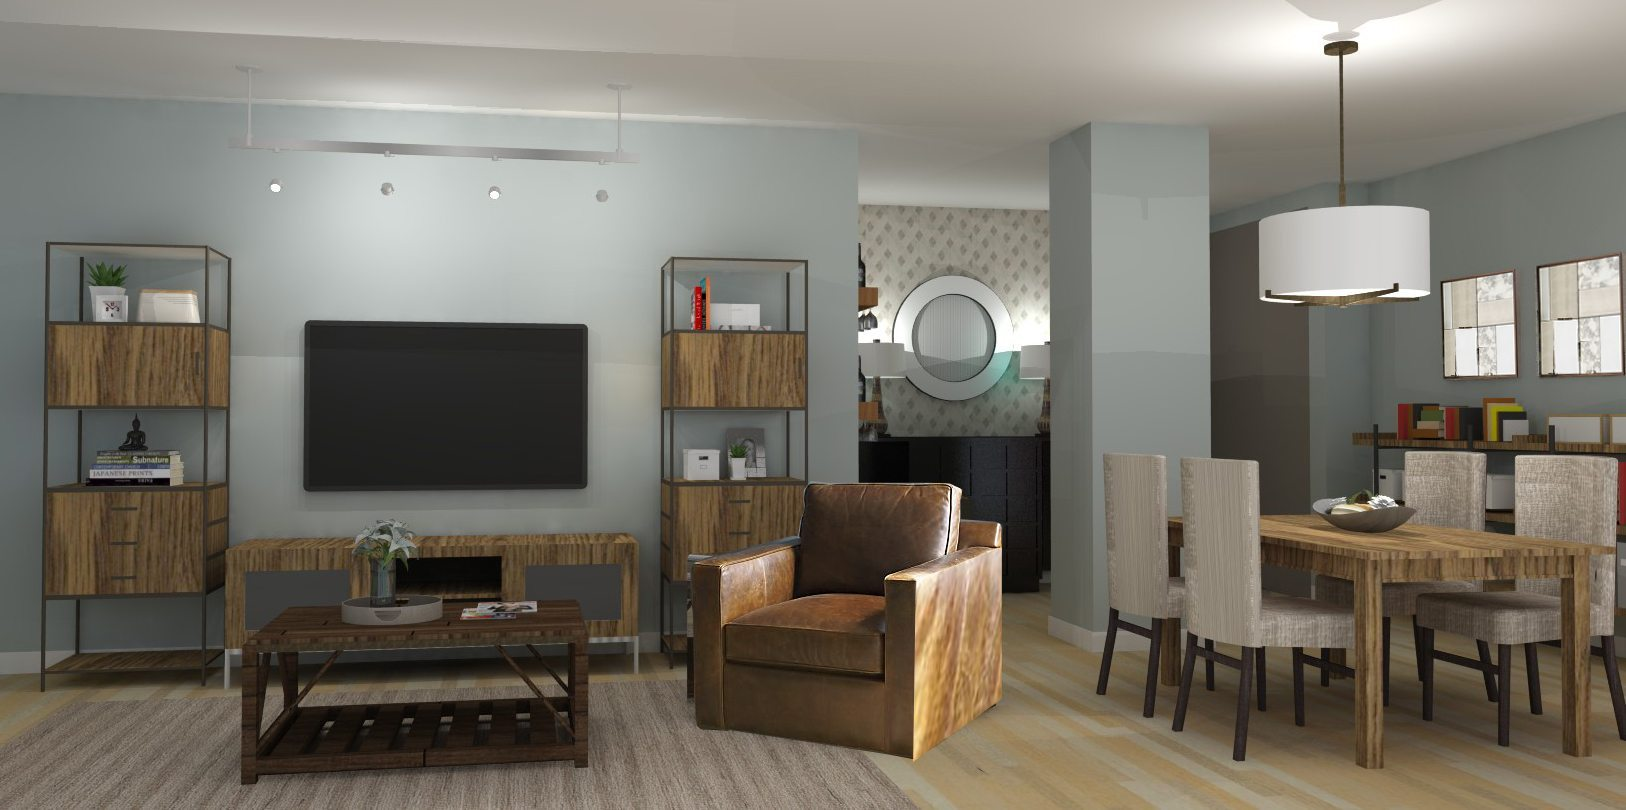 Marvellous Rustic Transitional Living Room Design Rustic Transitional Living Room Design A Space To Call Home Transitional Living Room S Transitional Living Room Curtains houzz 01 Transitional Living Room